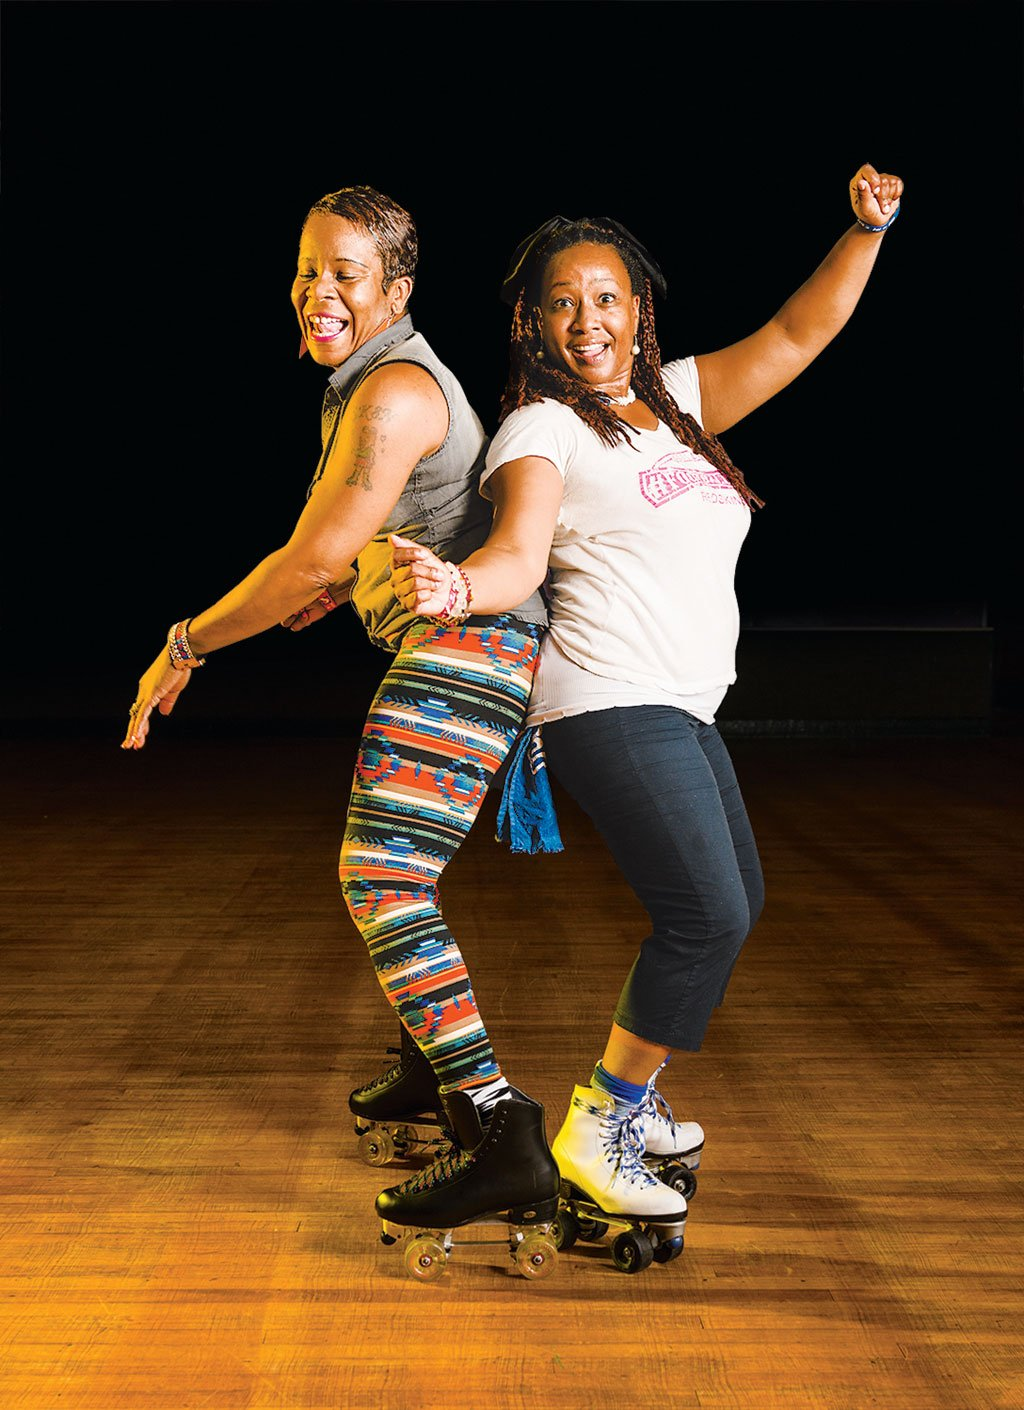 Roller Skating. Sharon Kimpson and Lora Fitzgerald.